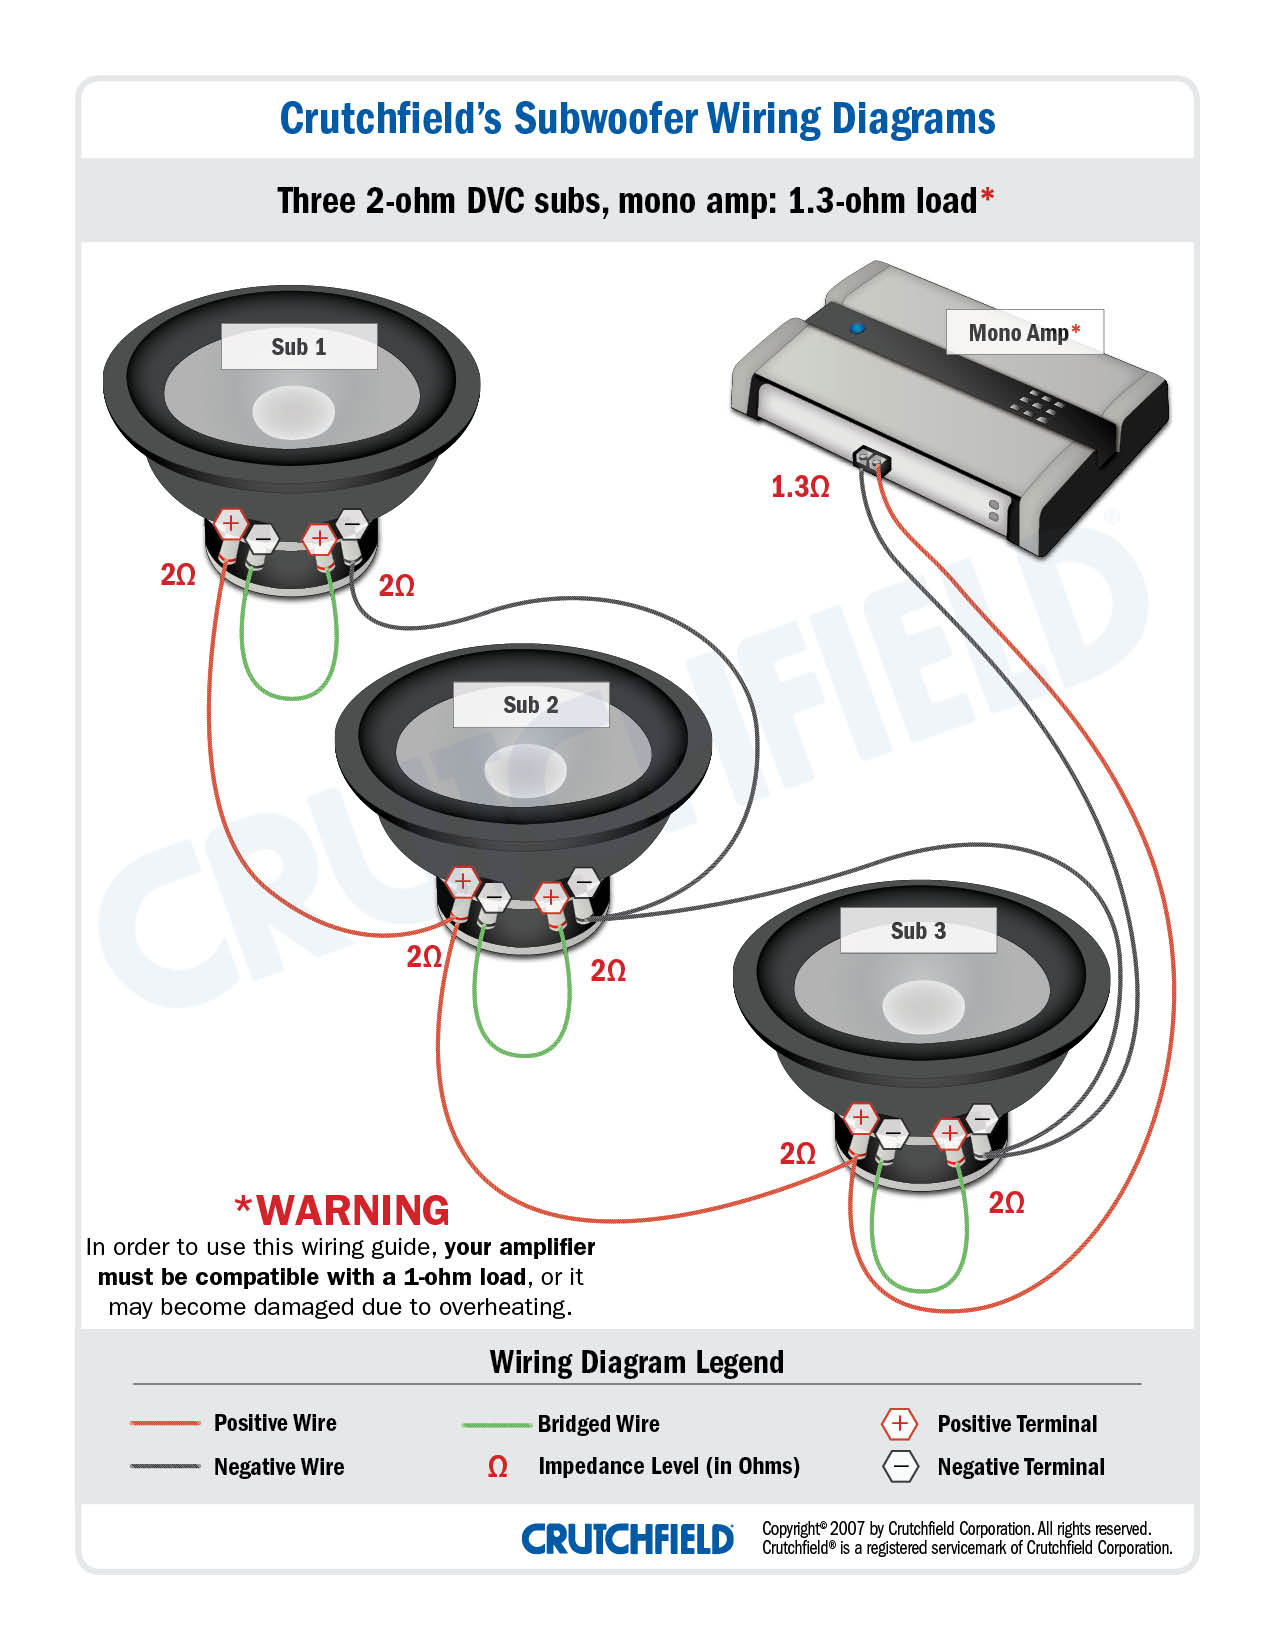 3 DVC 2 ohm mono low imp subwoofer wiring diagrams  at crackthecode.co